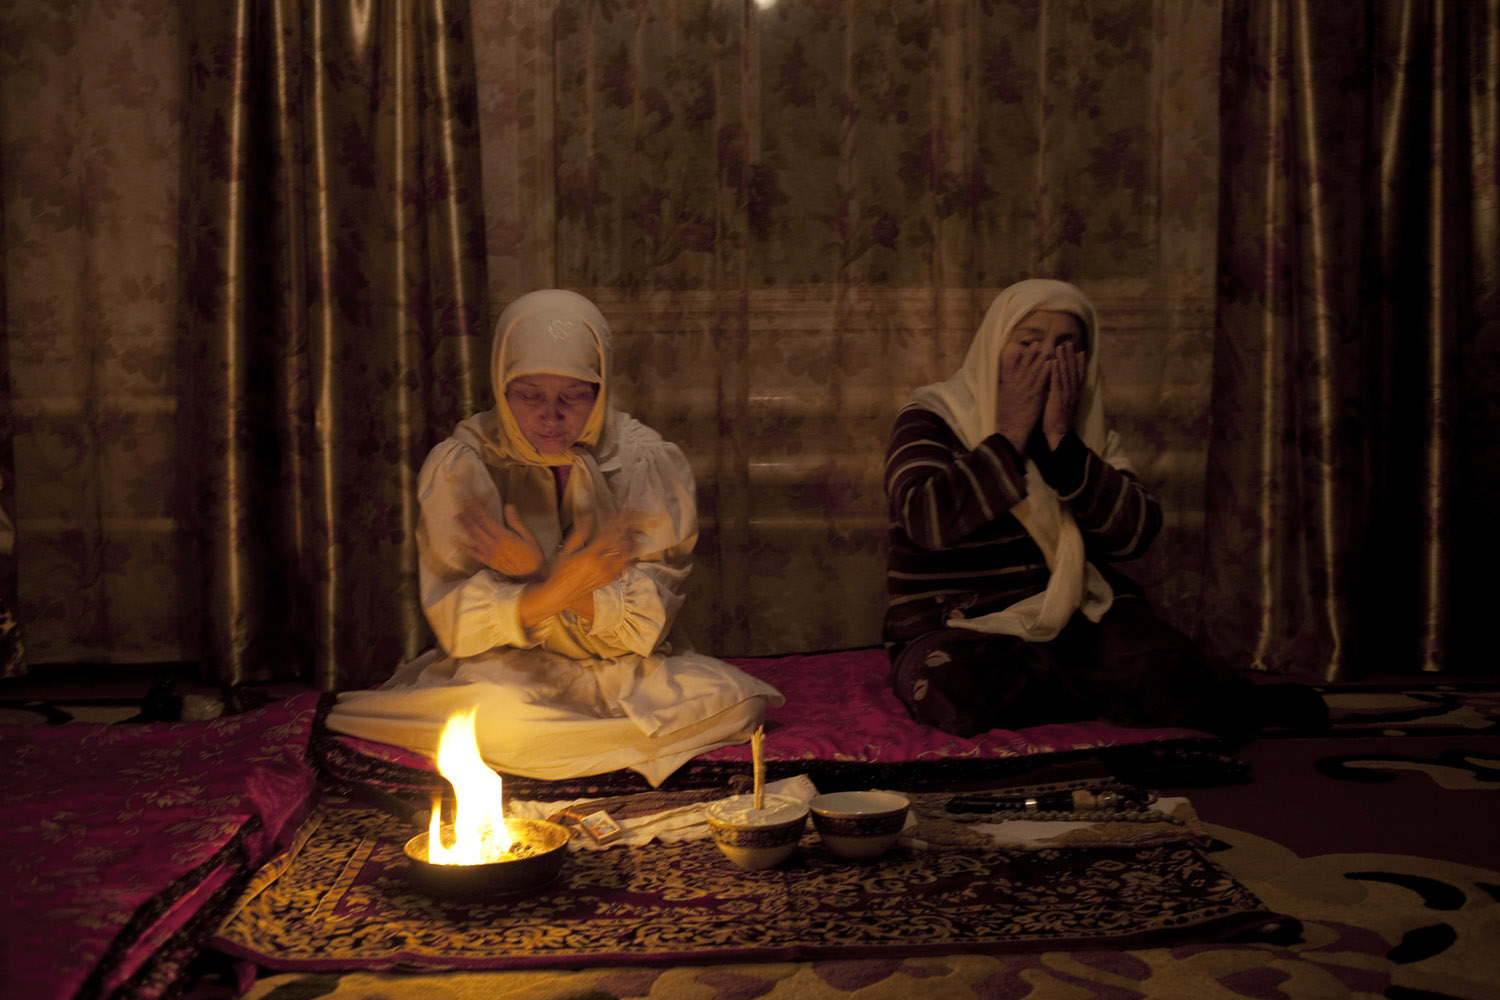 Late at night, a shaman called Burul performs Zhar Solu to purify the home and soul of her friend. They light candles to call the spirits.                               Talas, Kyrgyzstan